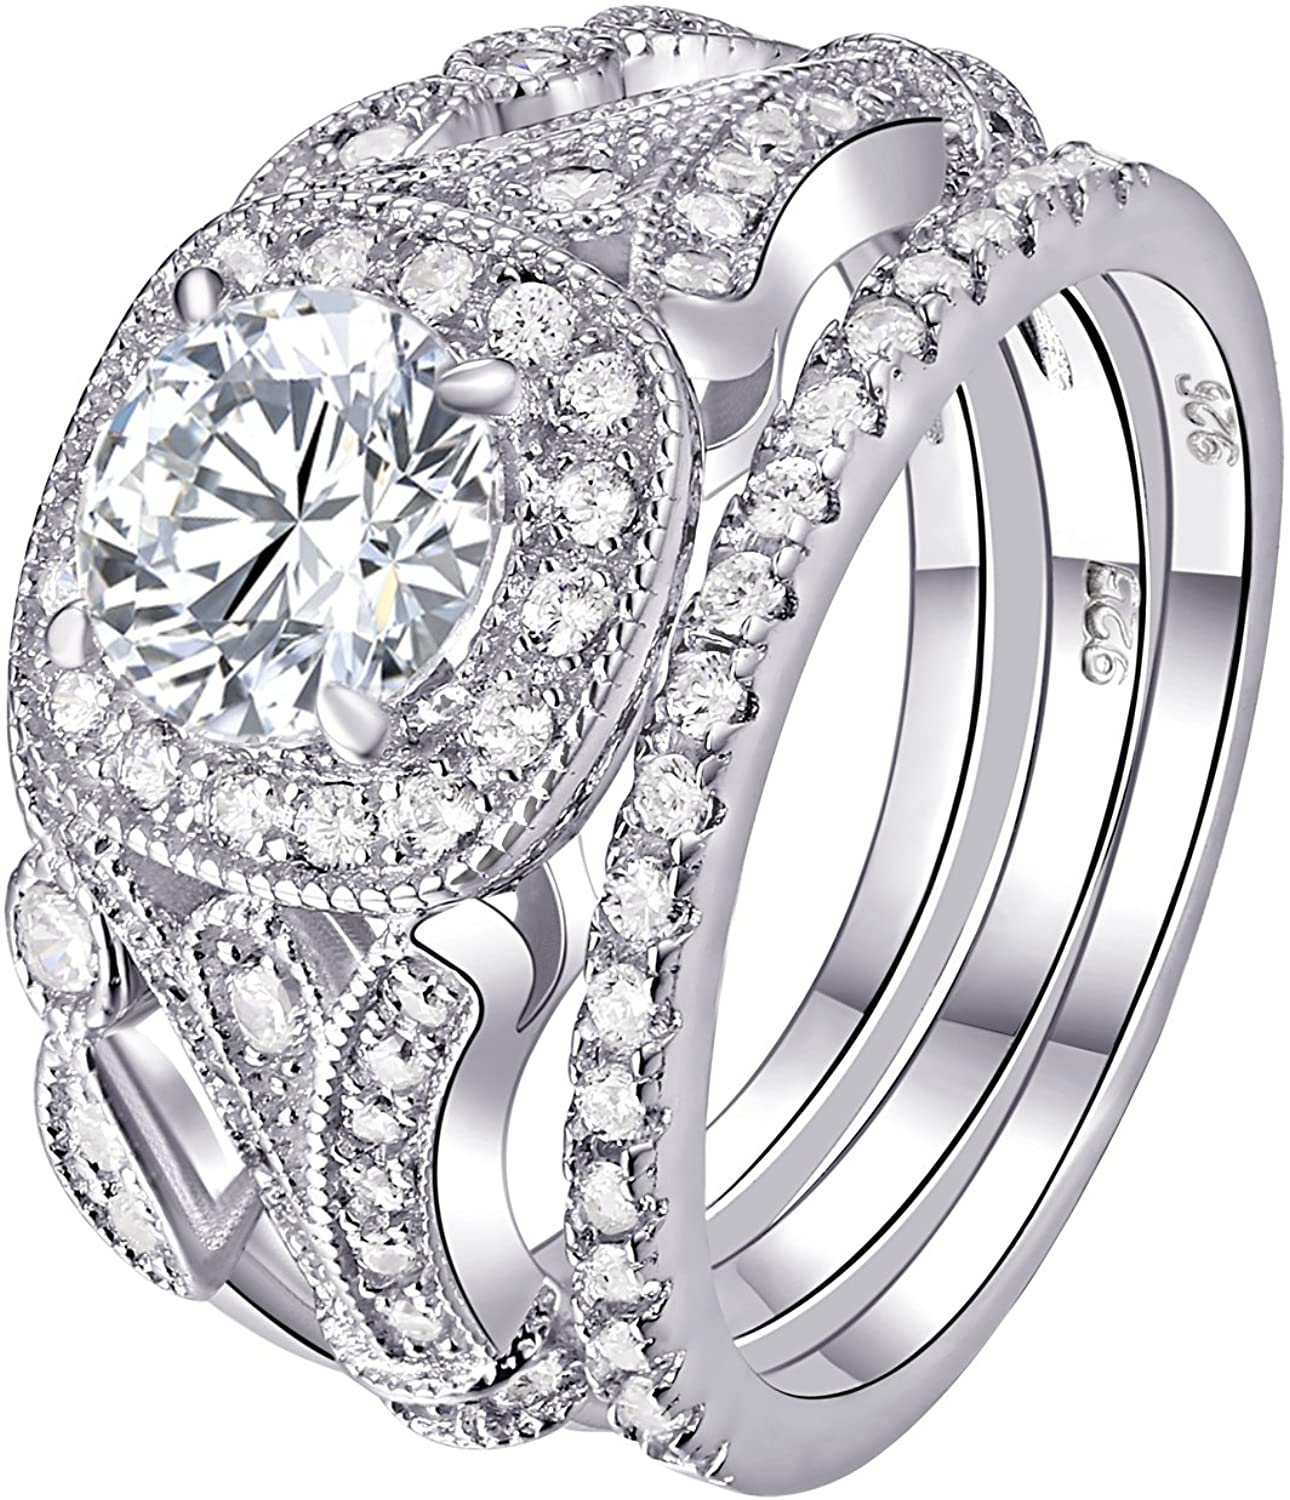 Newshe Wedding Rings for Women Engagement Set 925 Sterling Silver 2ct Round White AAA Cz Size 5-12